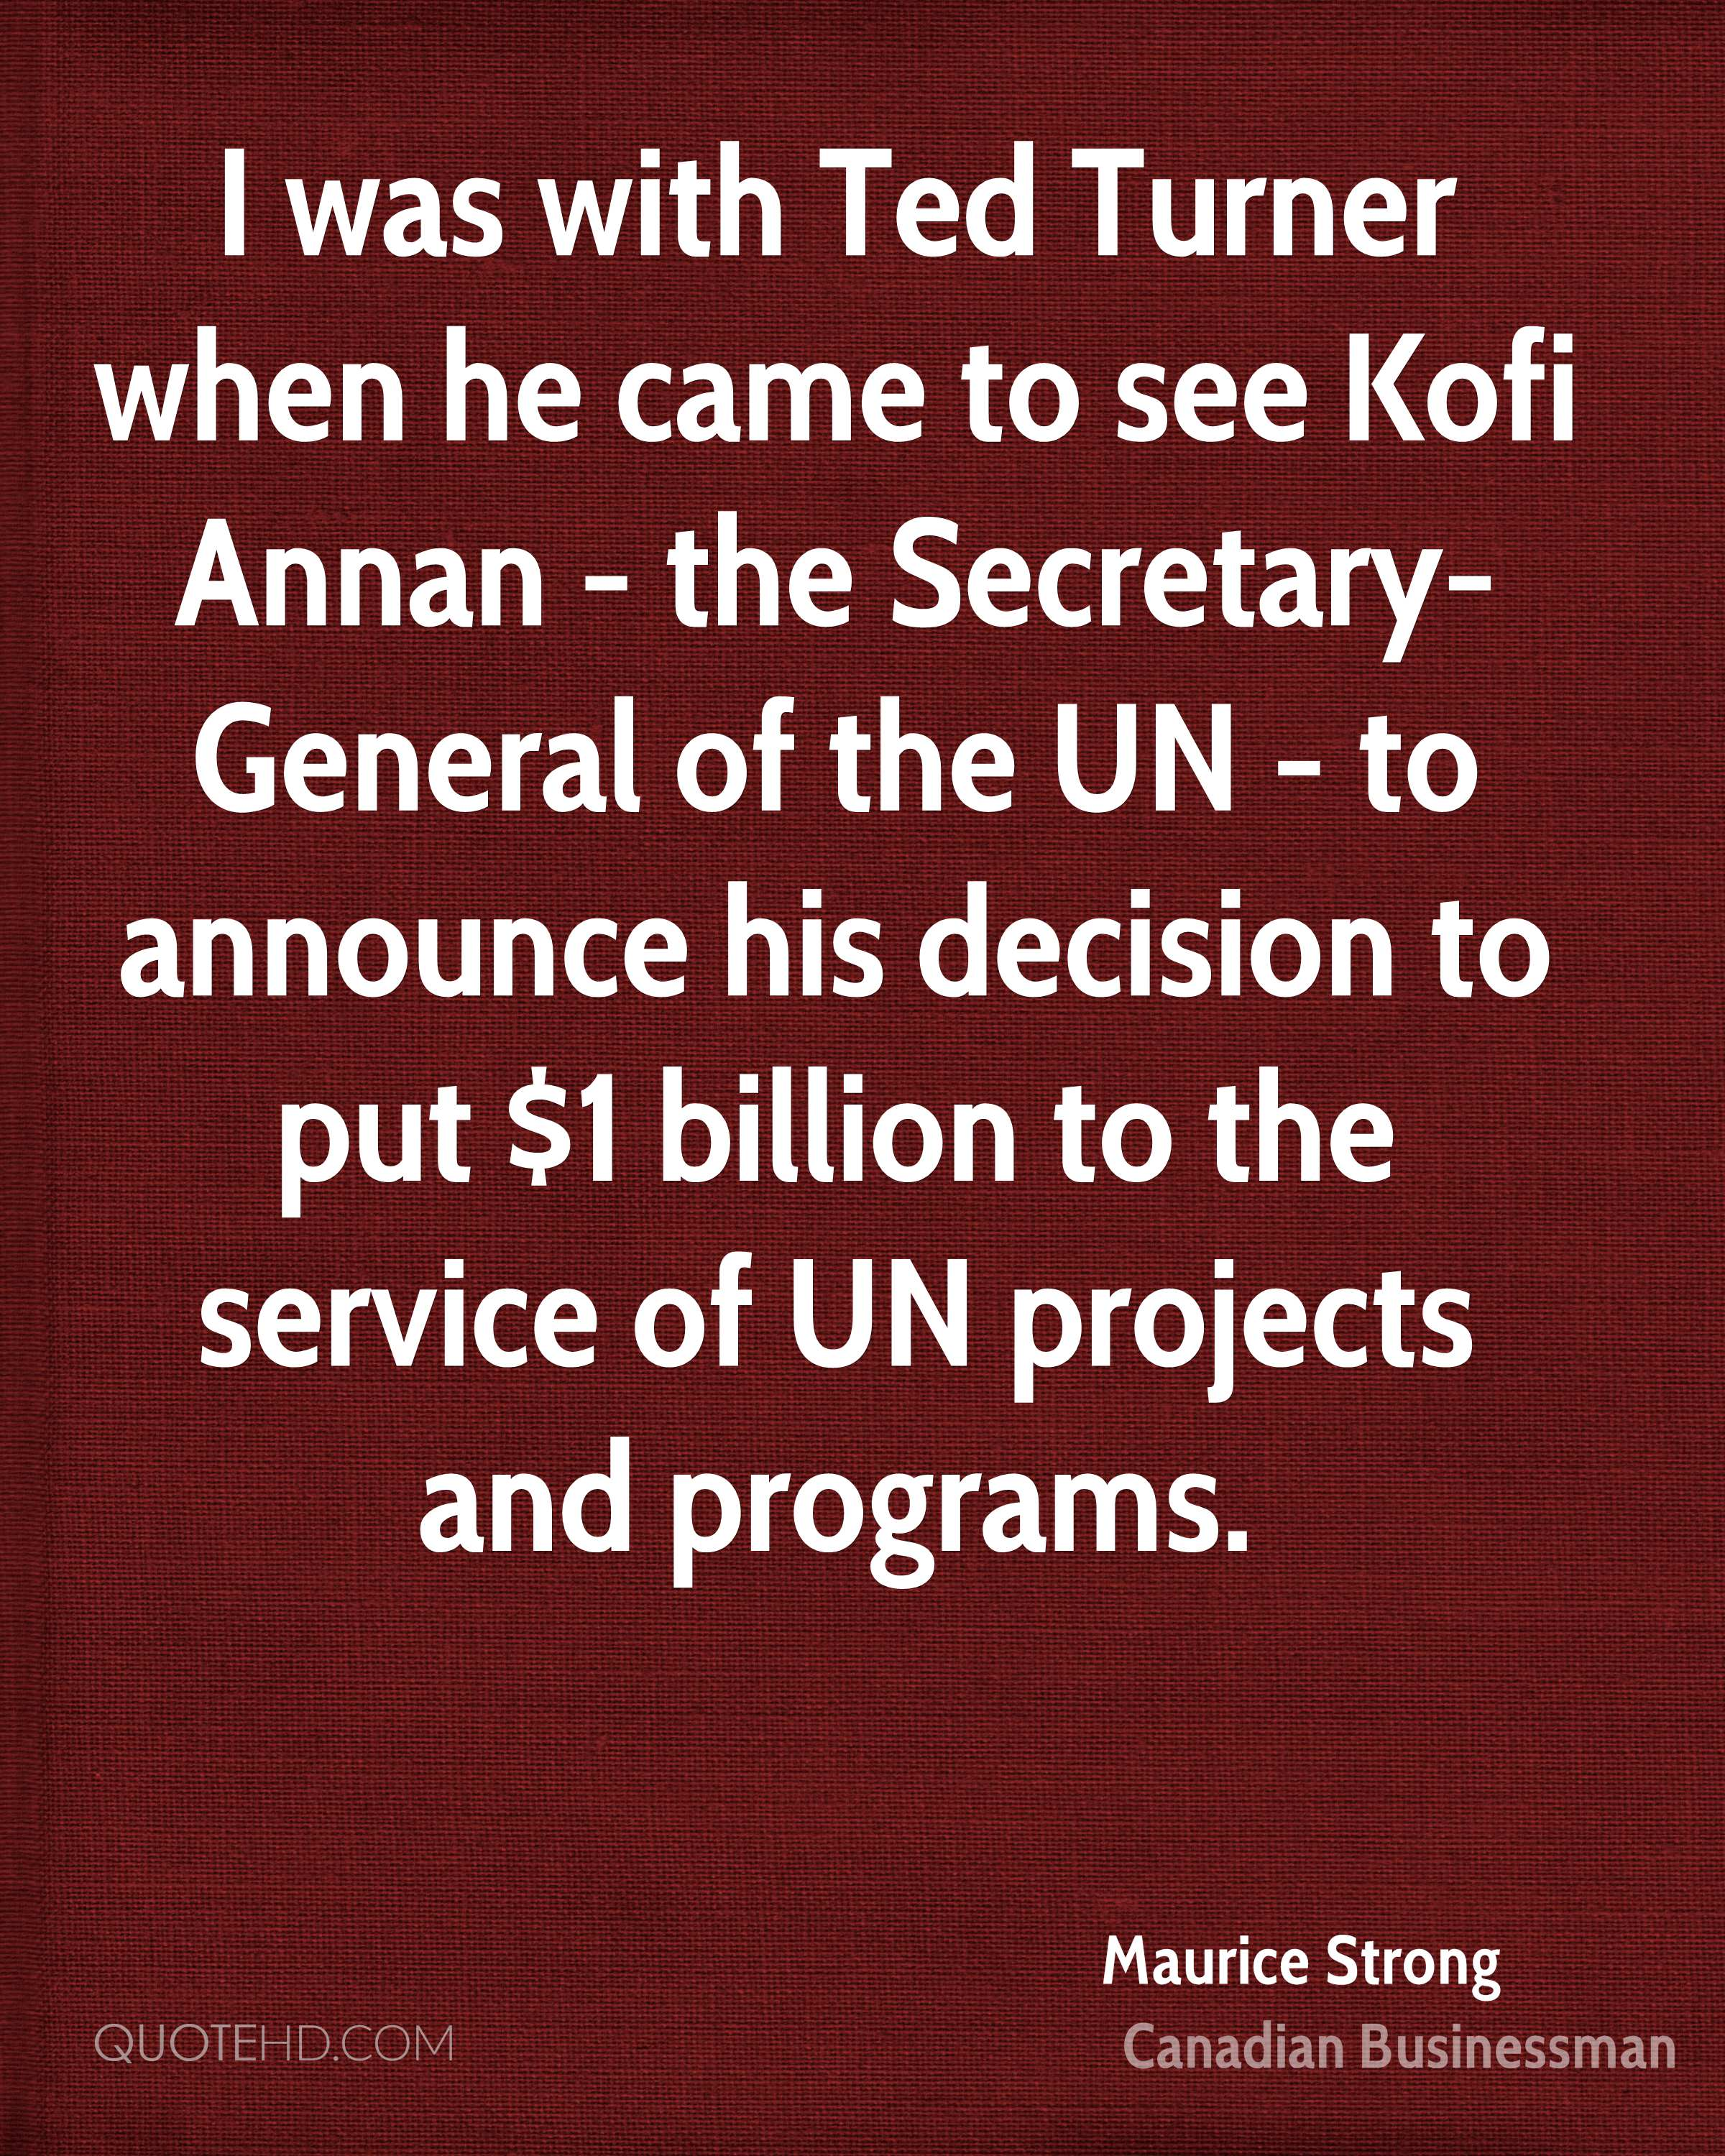 I was with Ted Turner when he came to see Kofi Annan - the Secretary-General of the UN - to announce his decision to put $1 billion to the service of UN projects and programs.